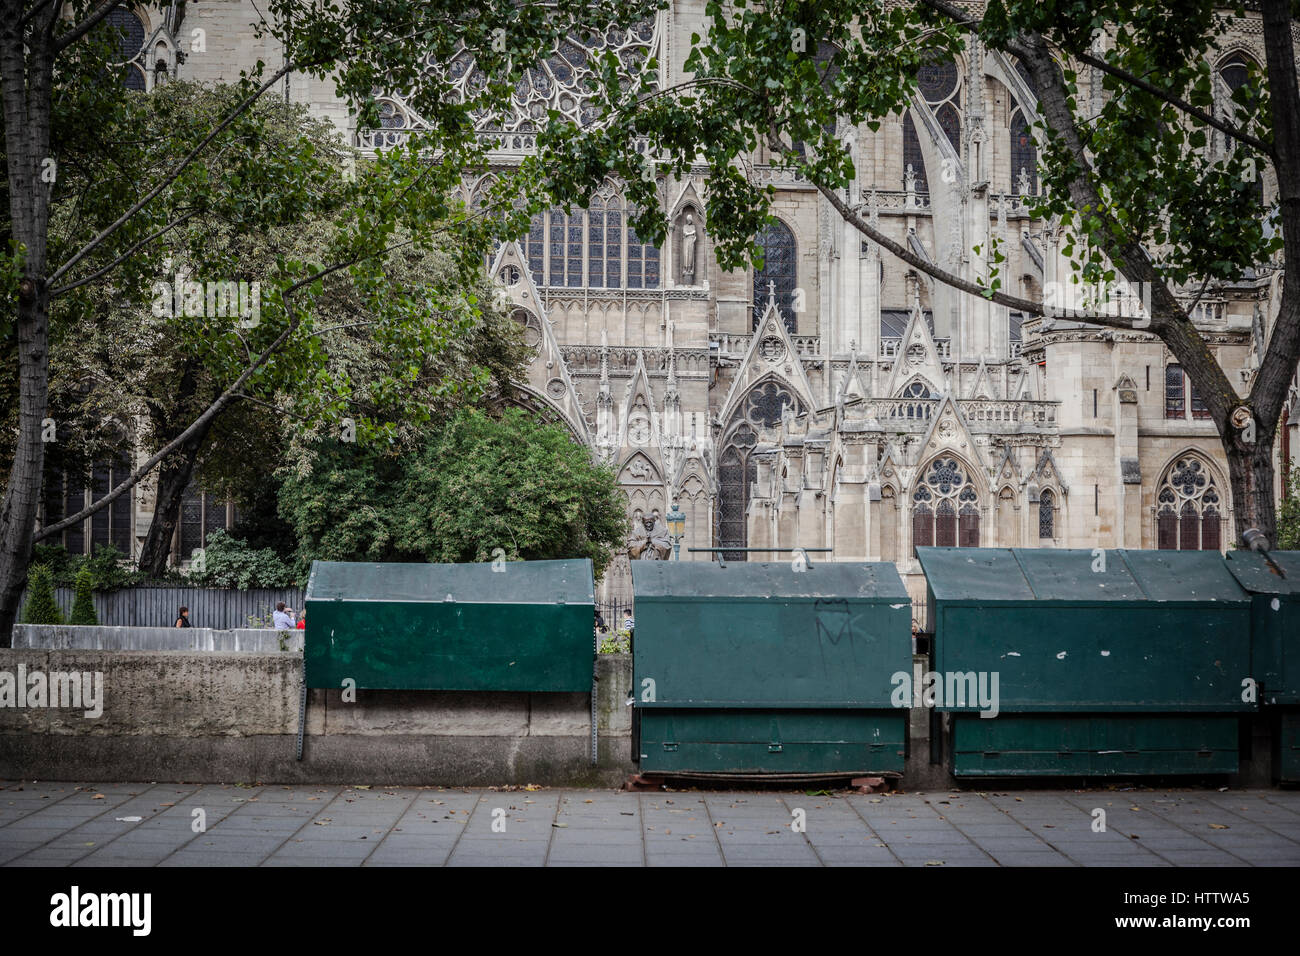 People wlaking in the Siene street shore, with Notre Dame in the back, Paris. - Stock Image